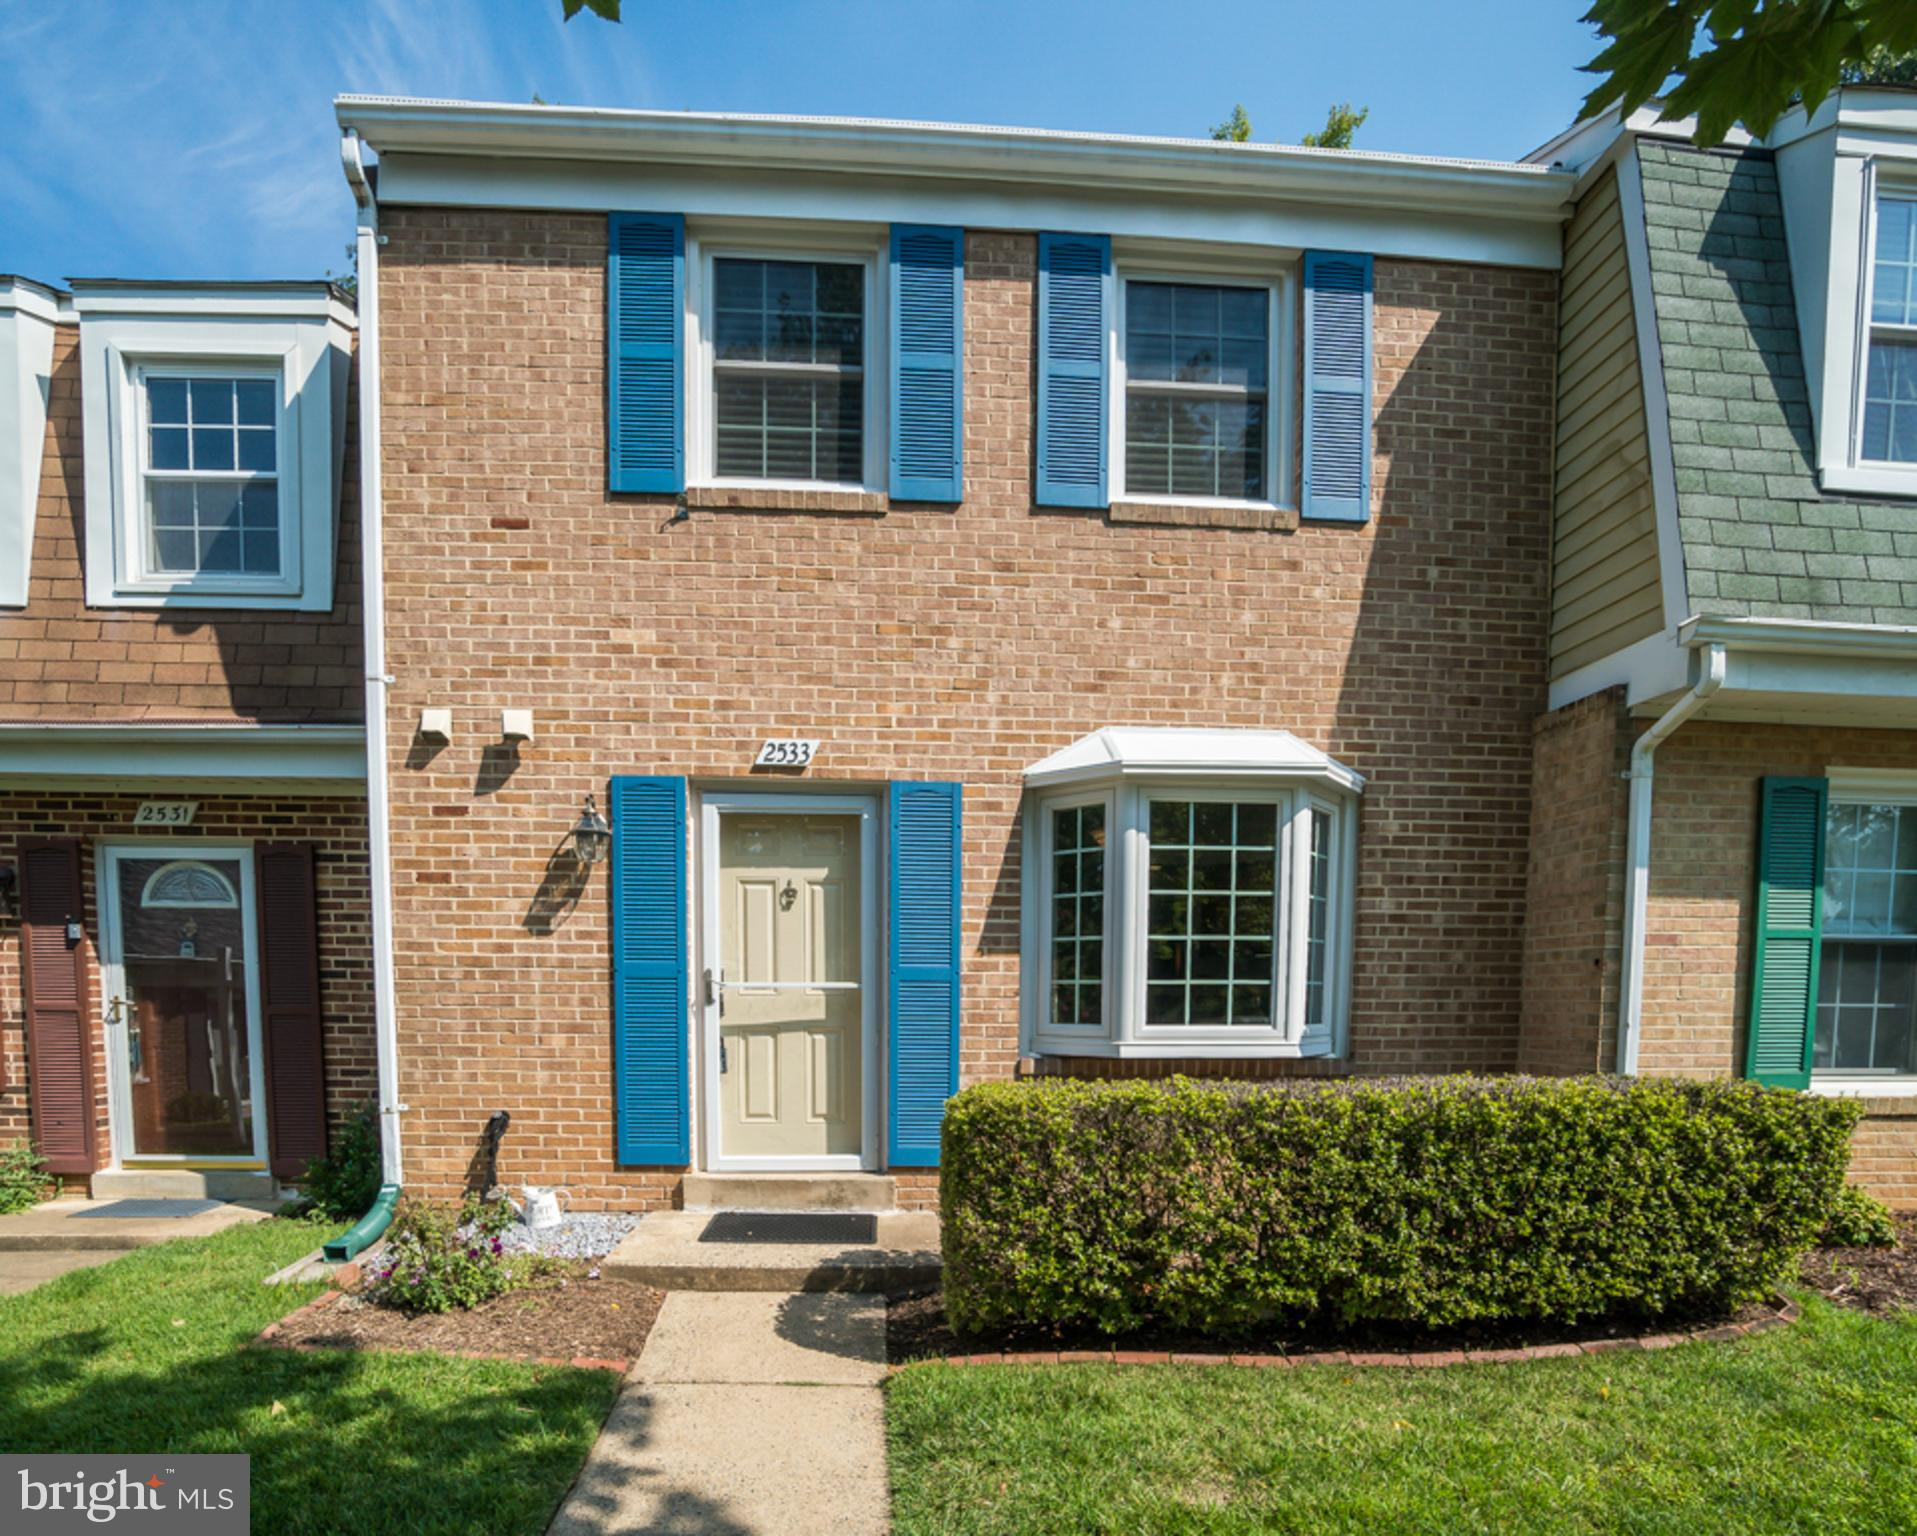 2533 Herrell Ct, Falls Church, VA, 22043